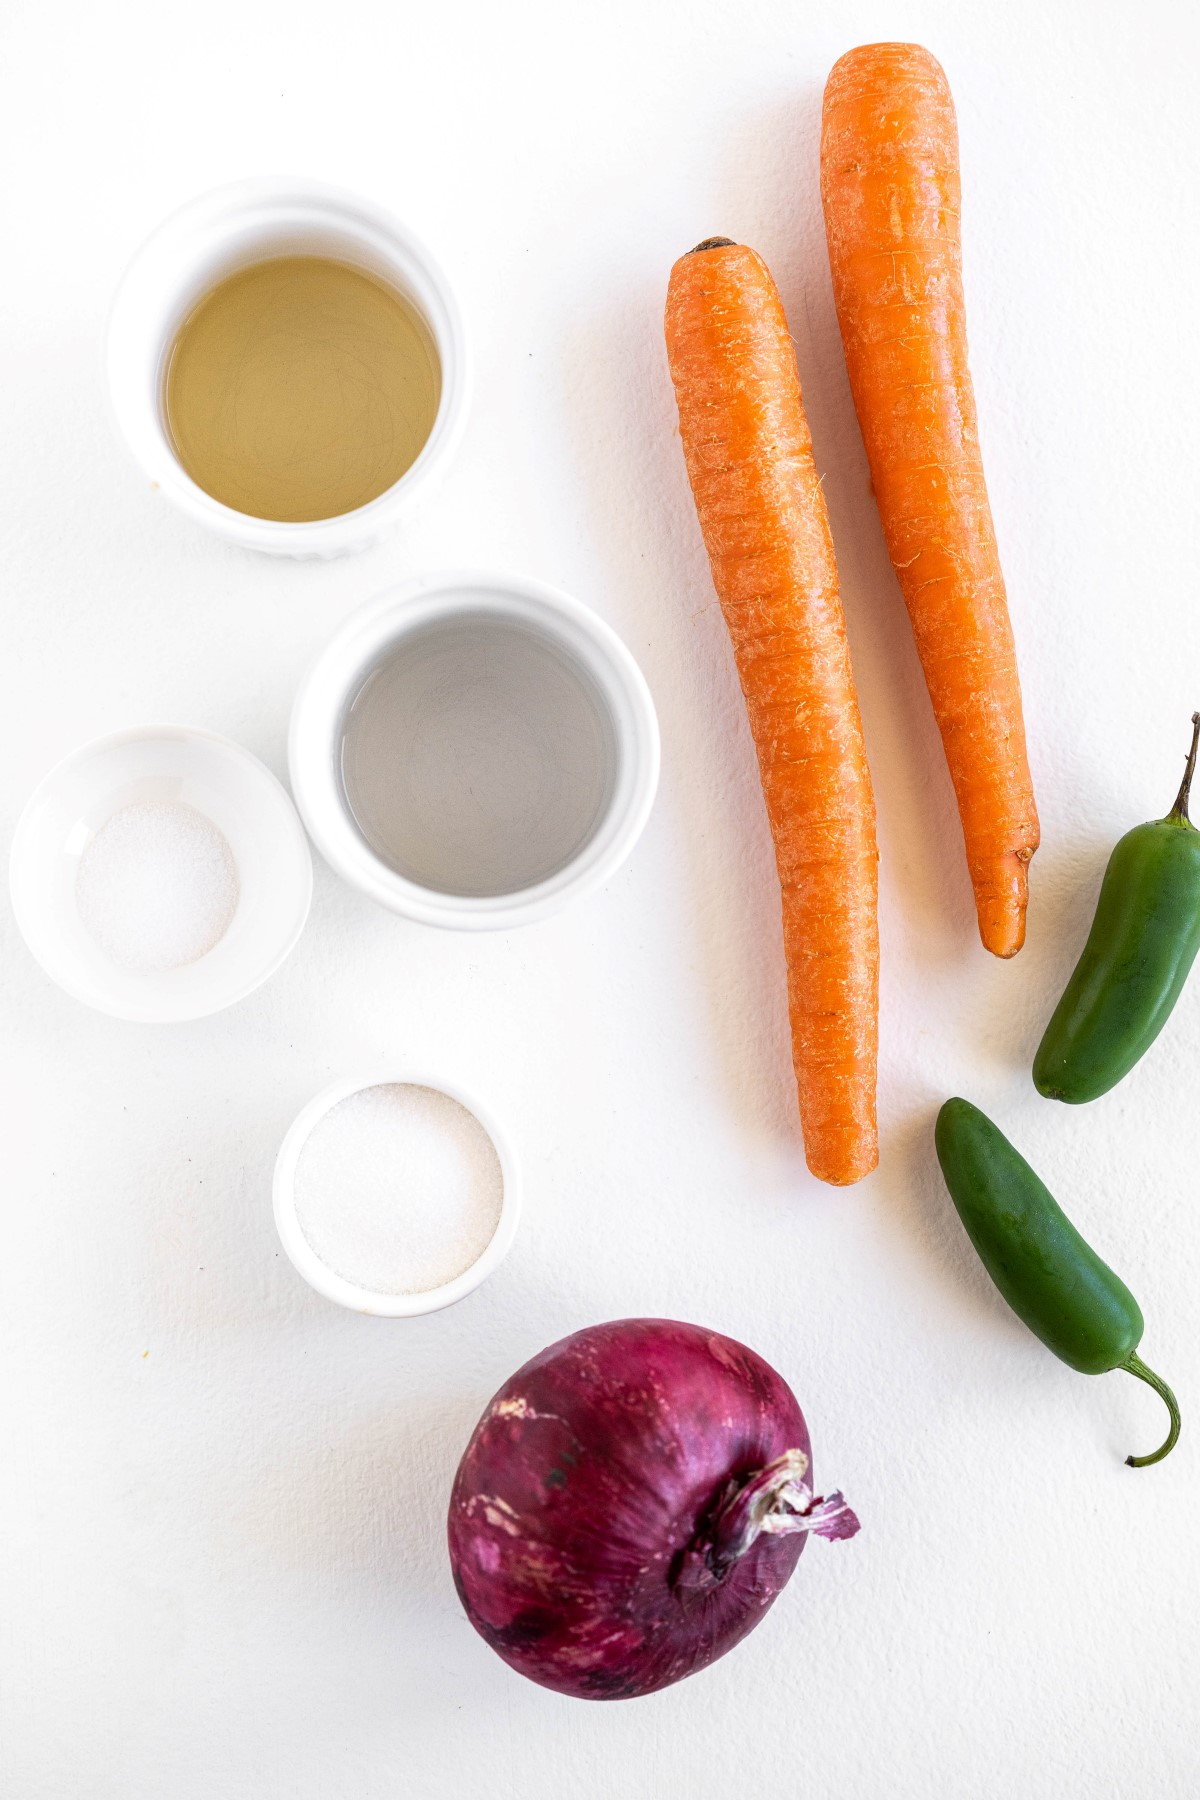 Ingredients used in the quick pickled vegetables including carrots, Red onion and jalapenos